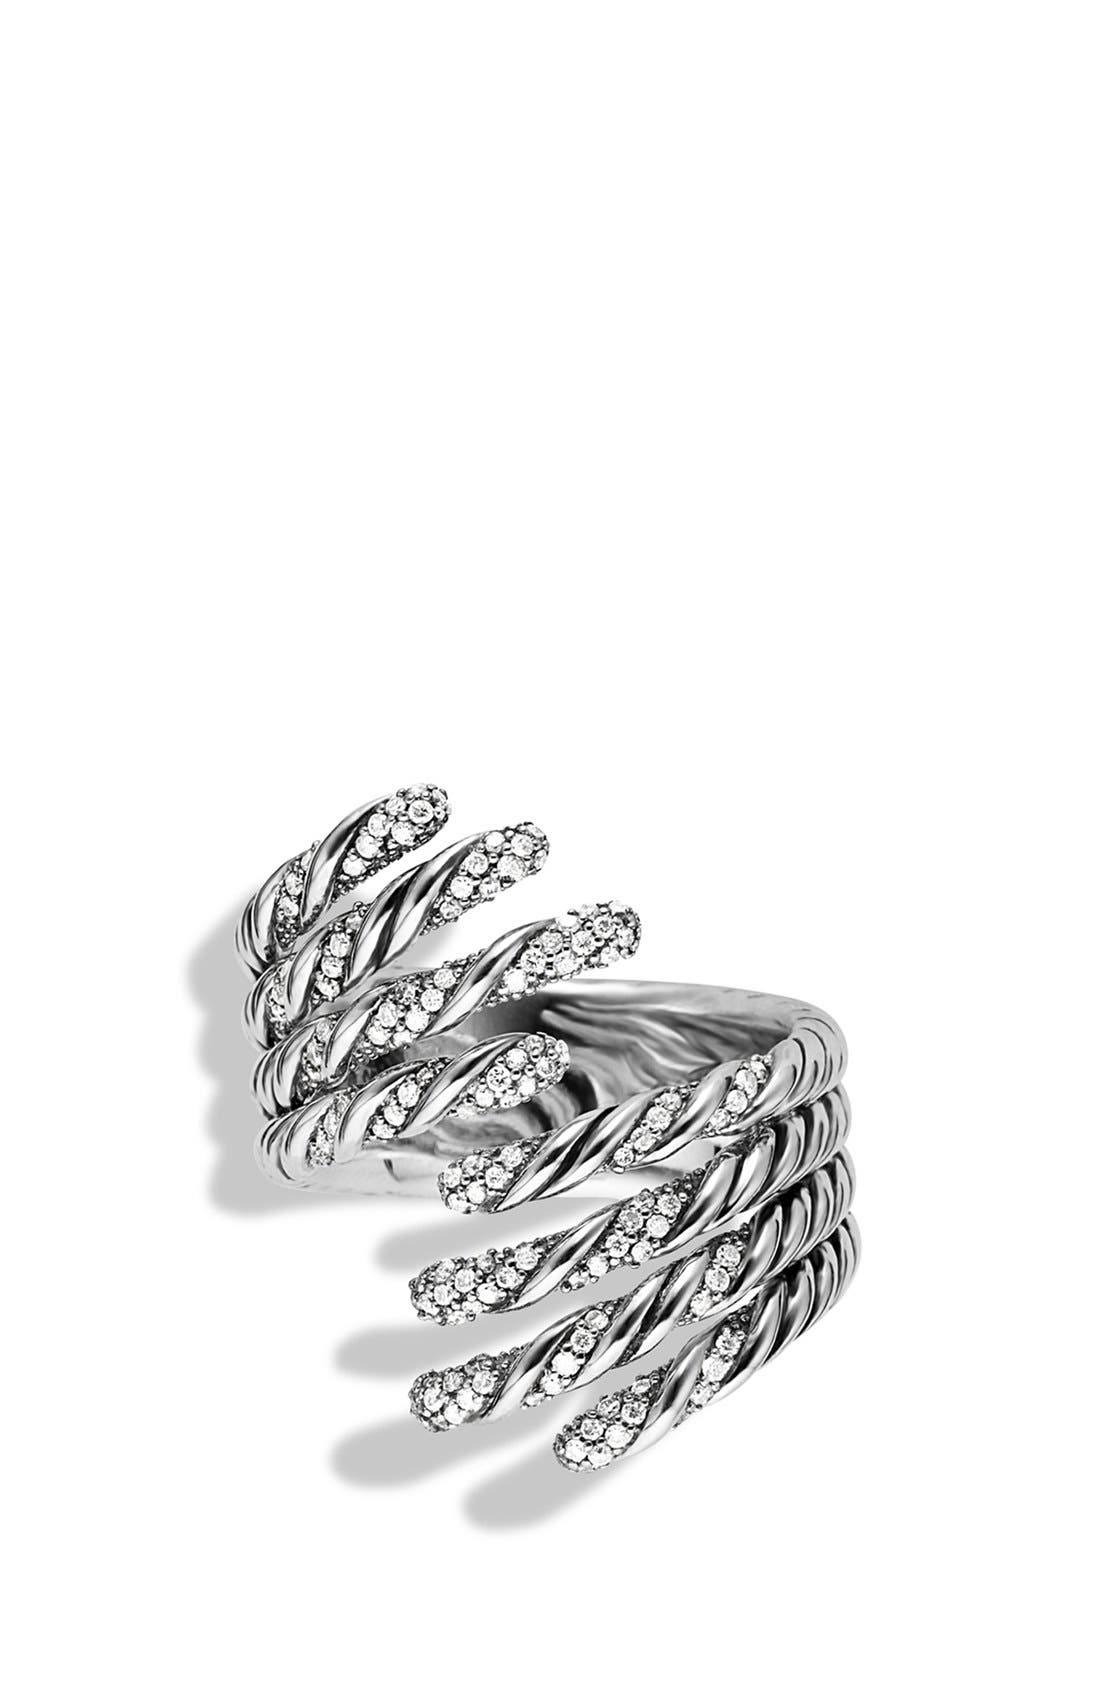 Alternate Image 3  - David Yurman 'Willow' Open Four-Row Ring with Diamonds